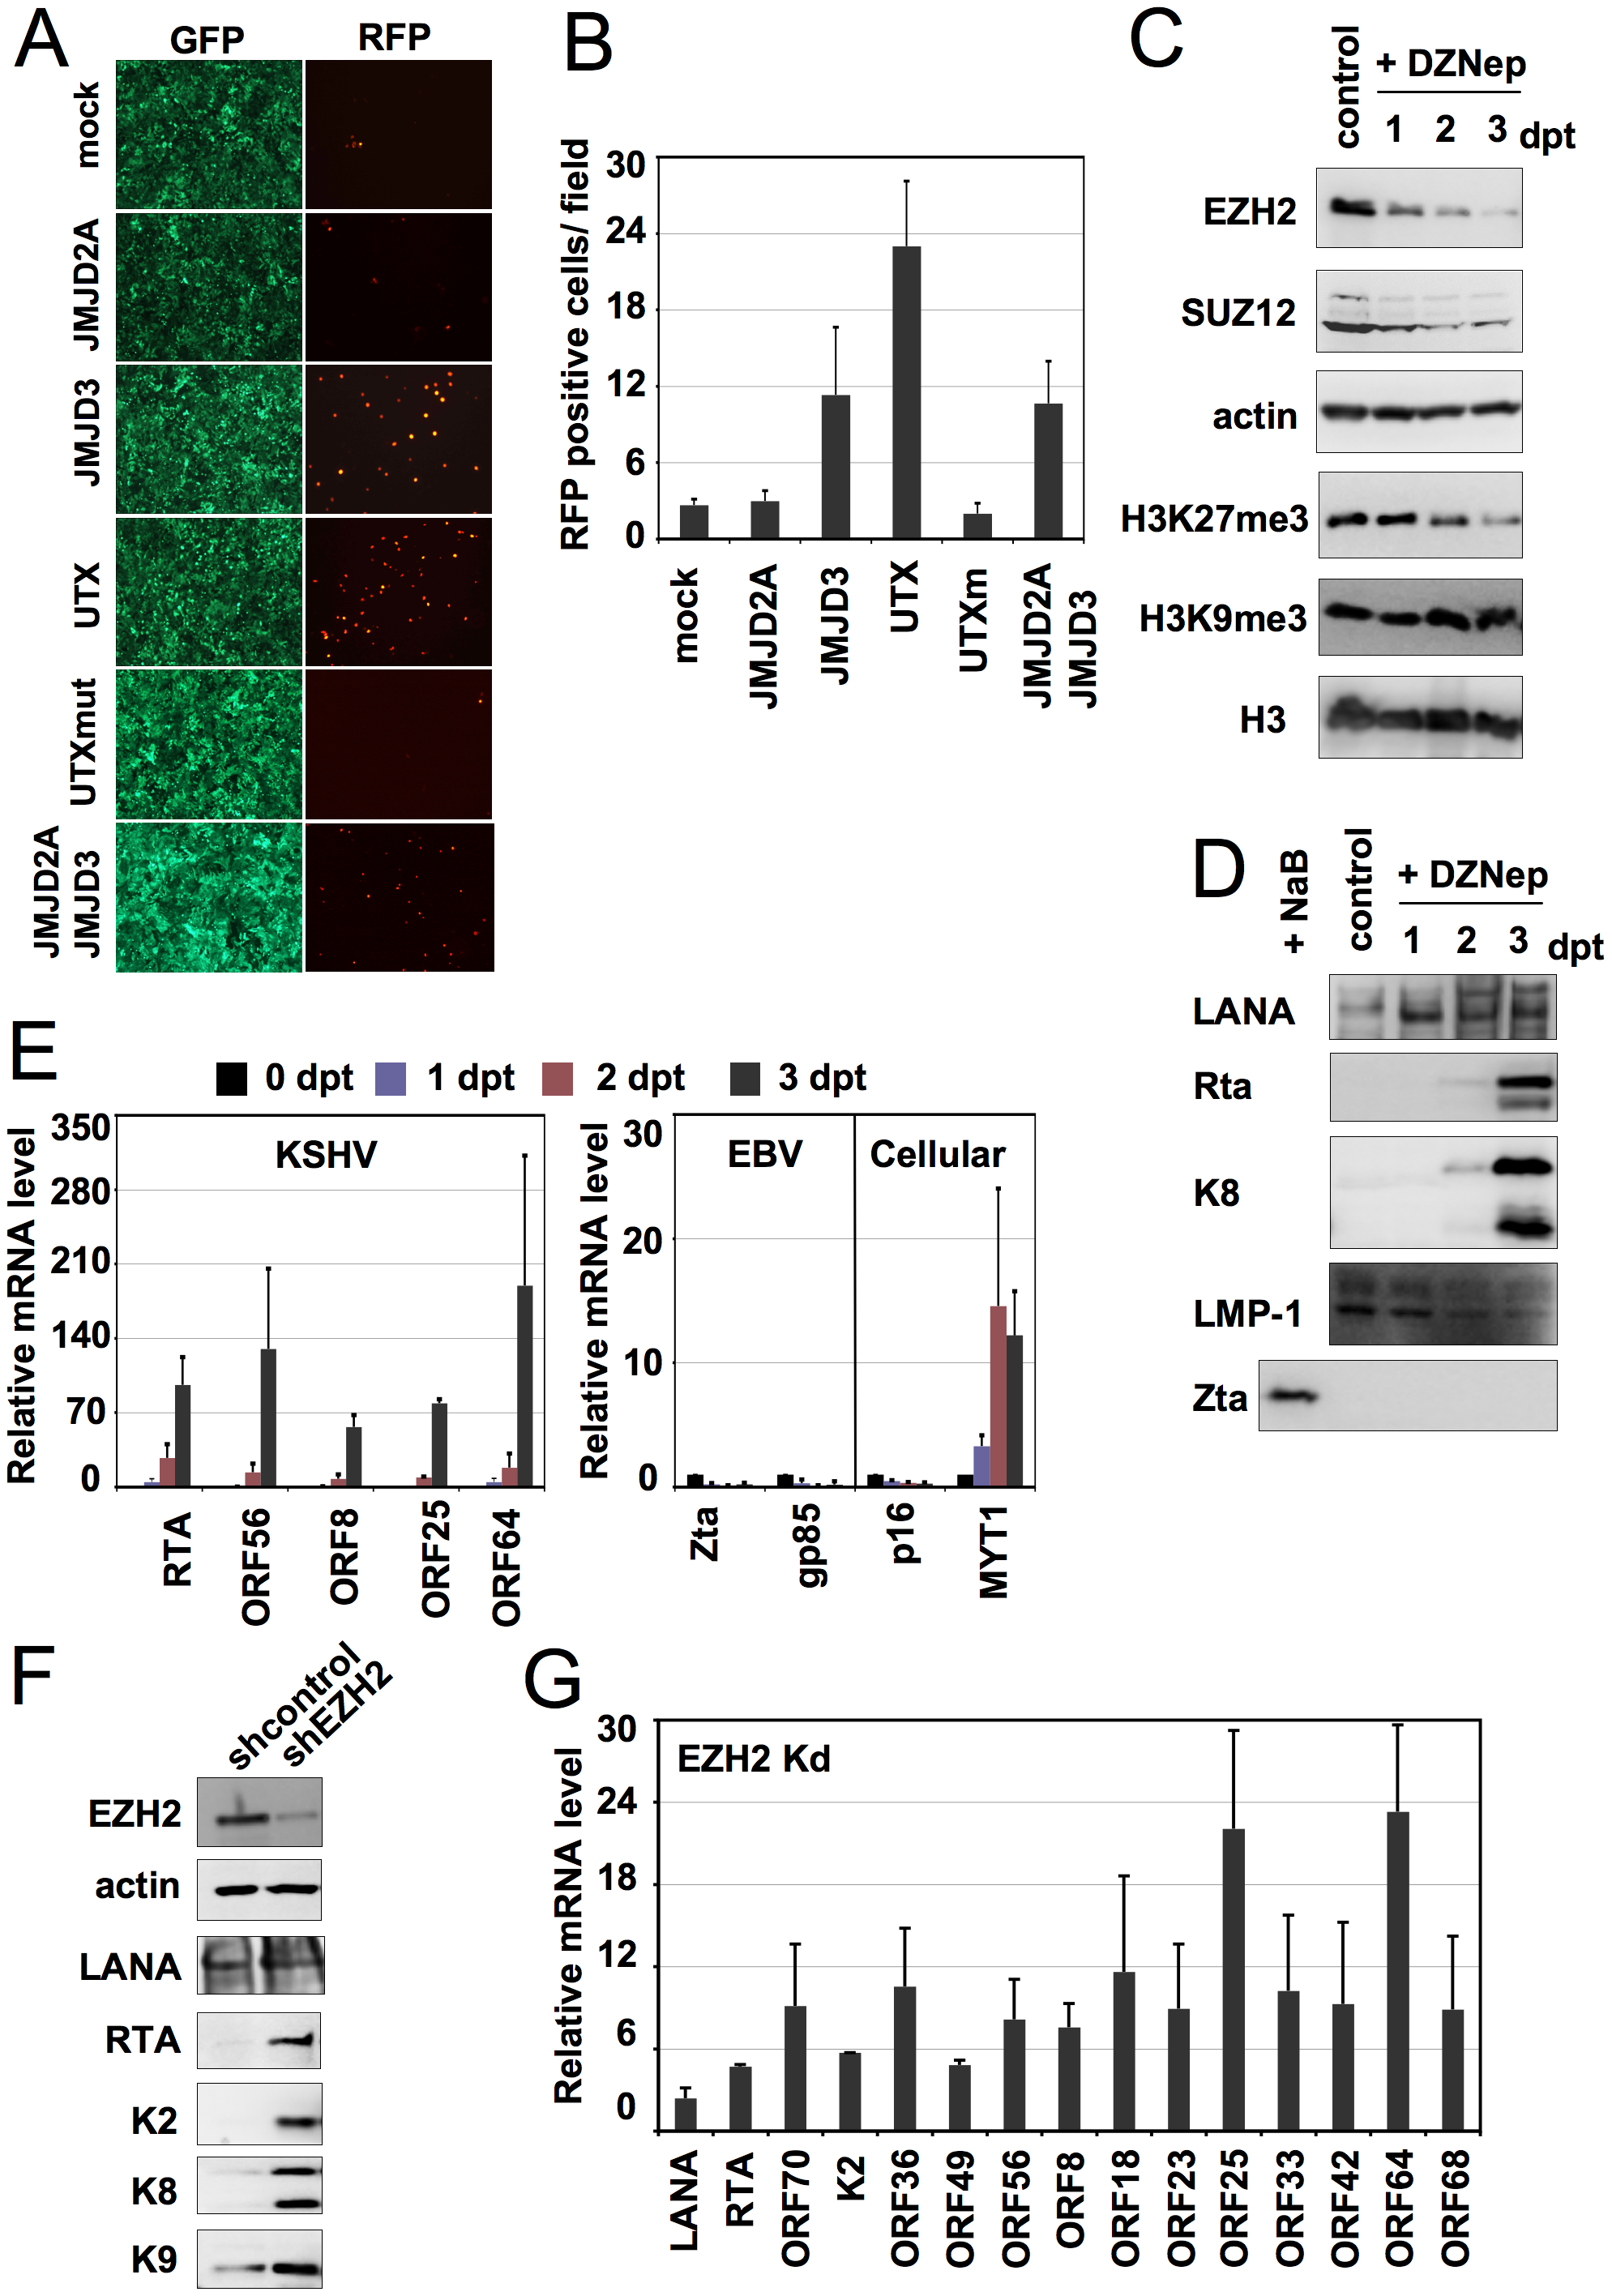 Polycomb group proteins are involved in the maintenance of latency of KSHV.